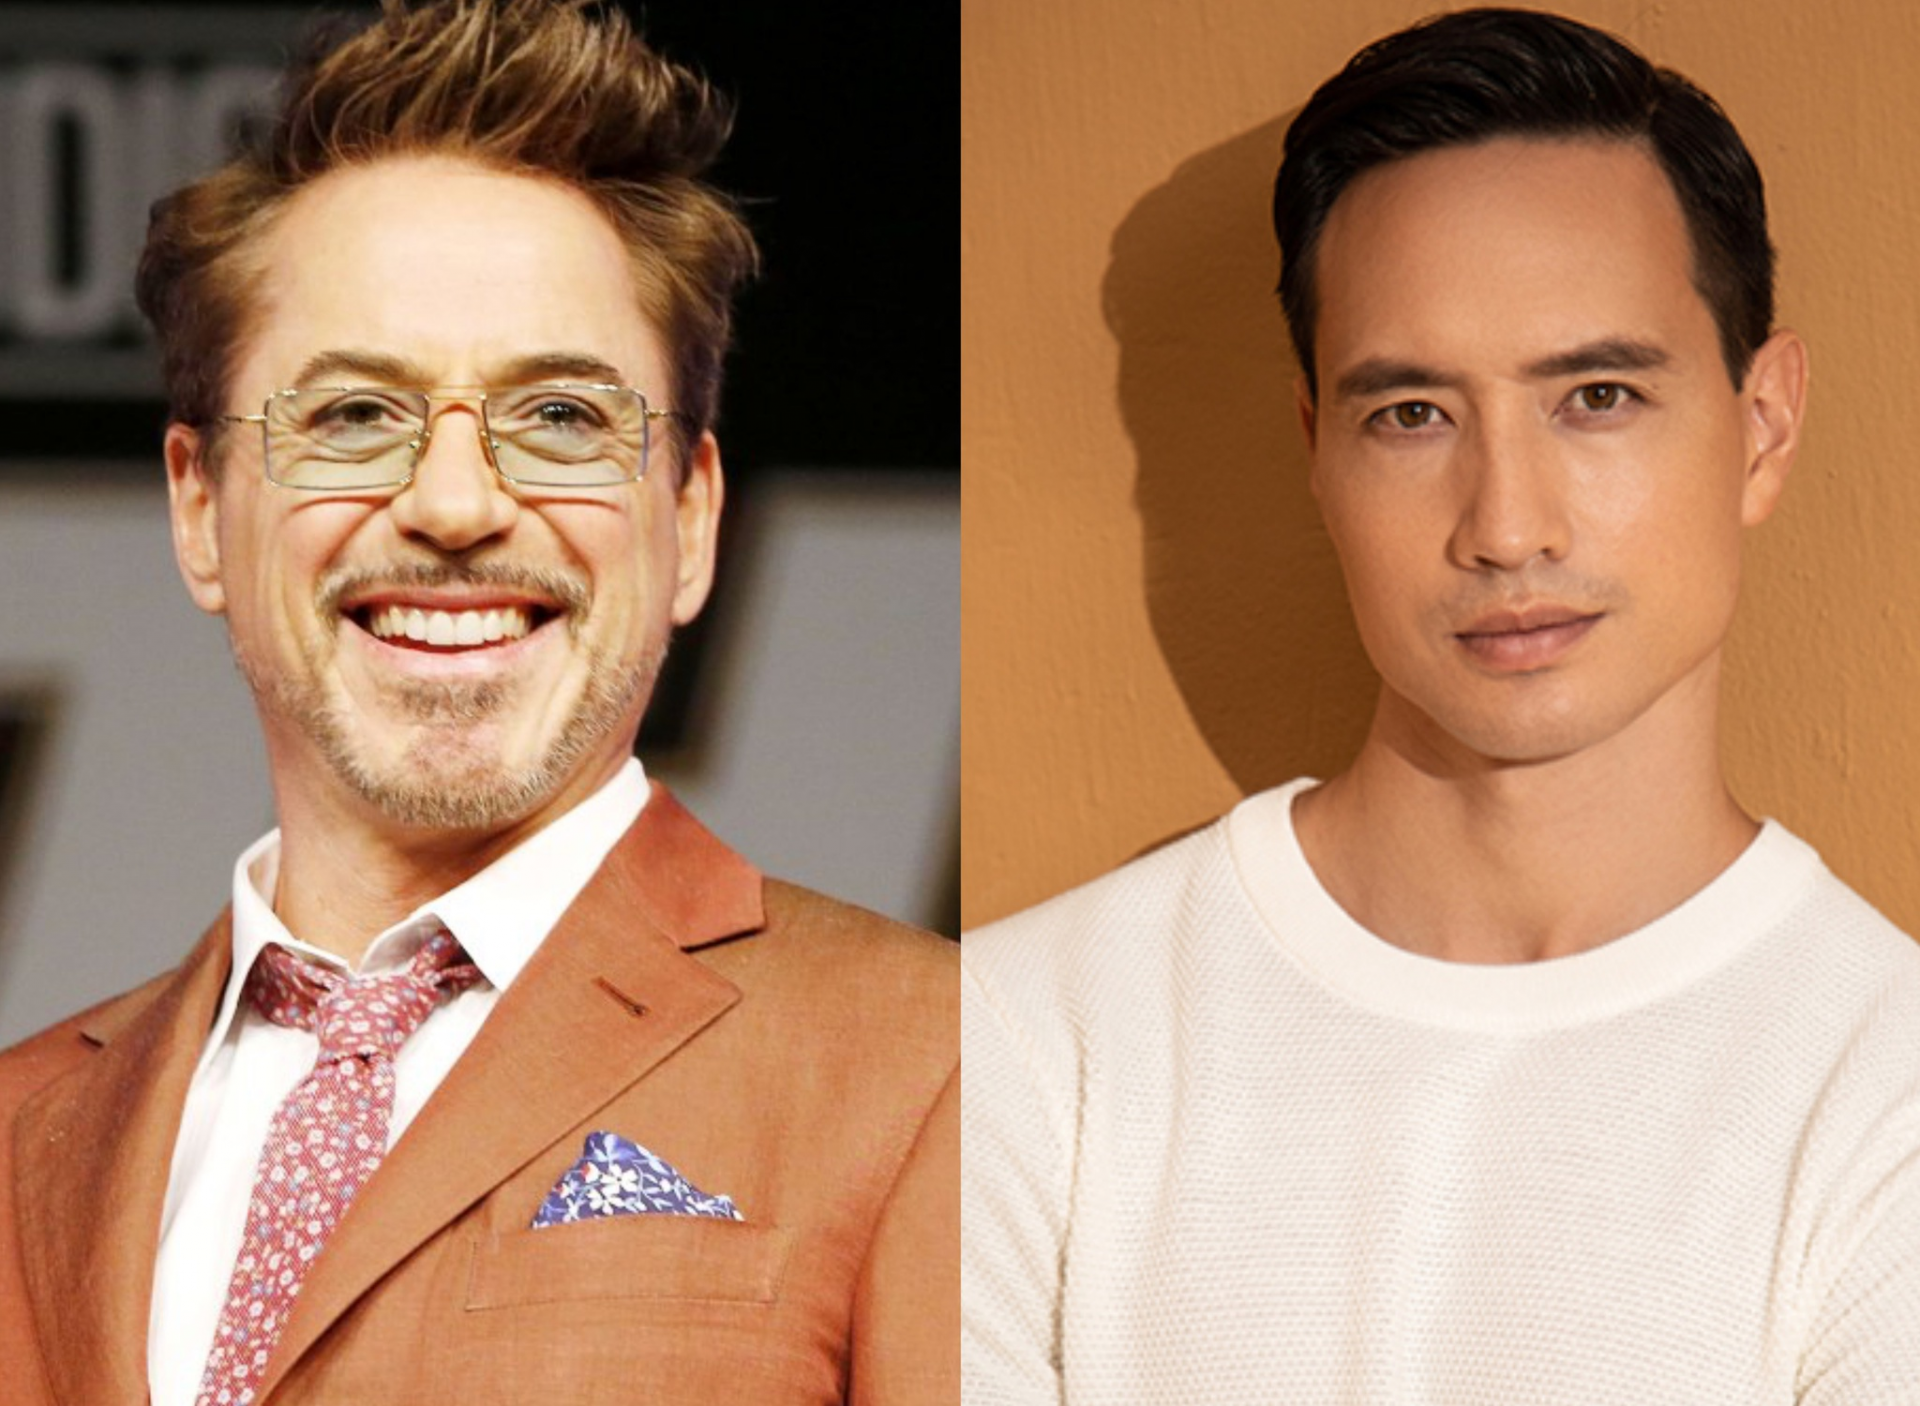 Drama Series of Vietnamese's The Sympathizer: 'Iron Man' Robert Downey Jr. To Co-Star